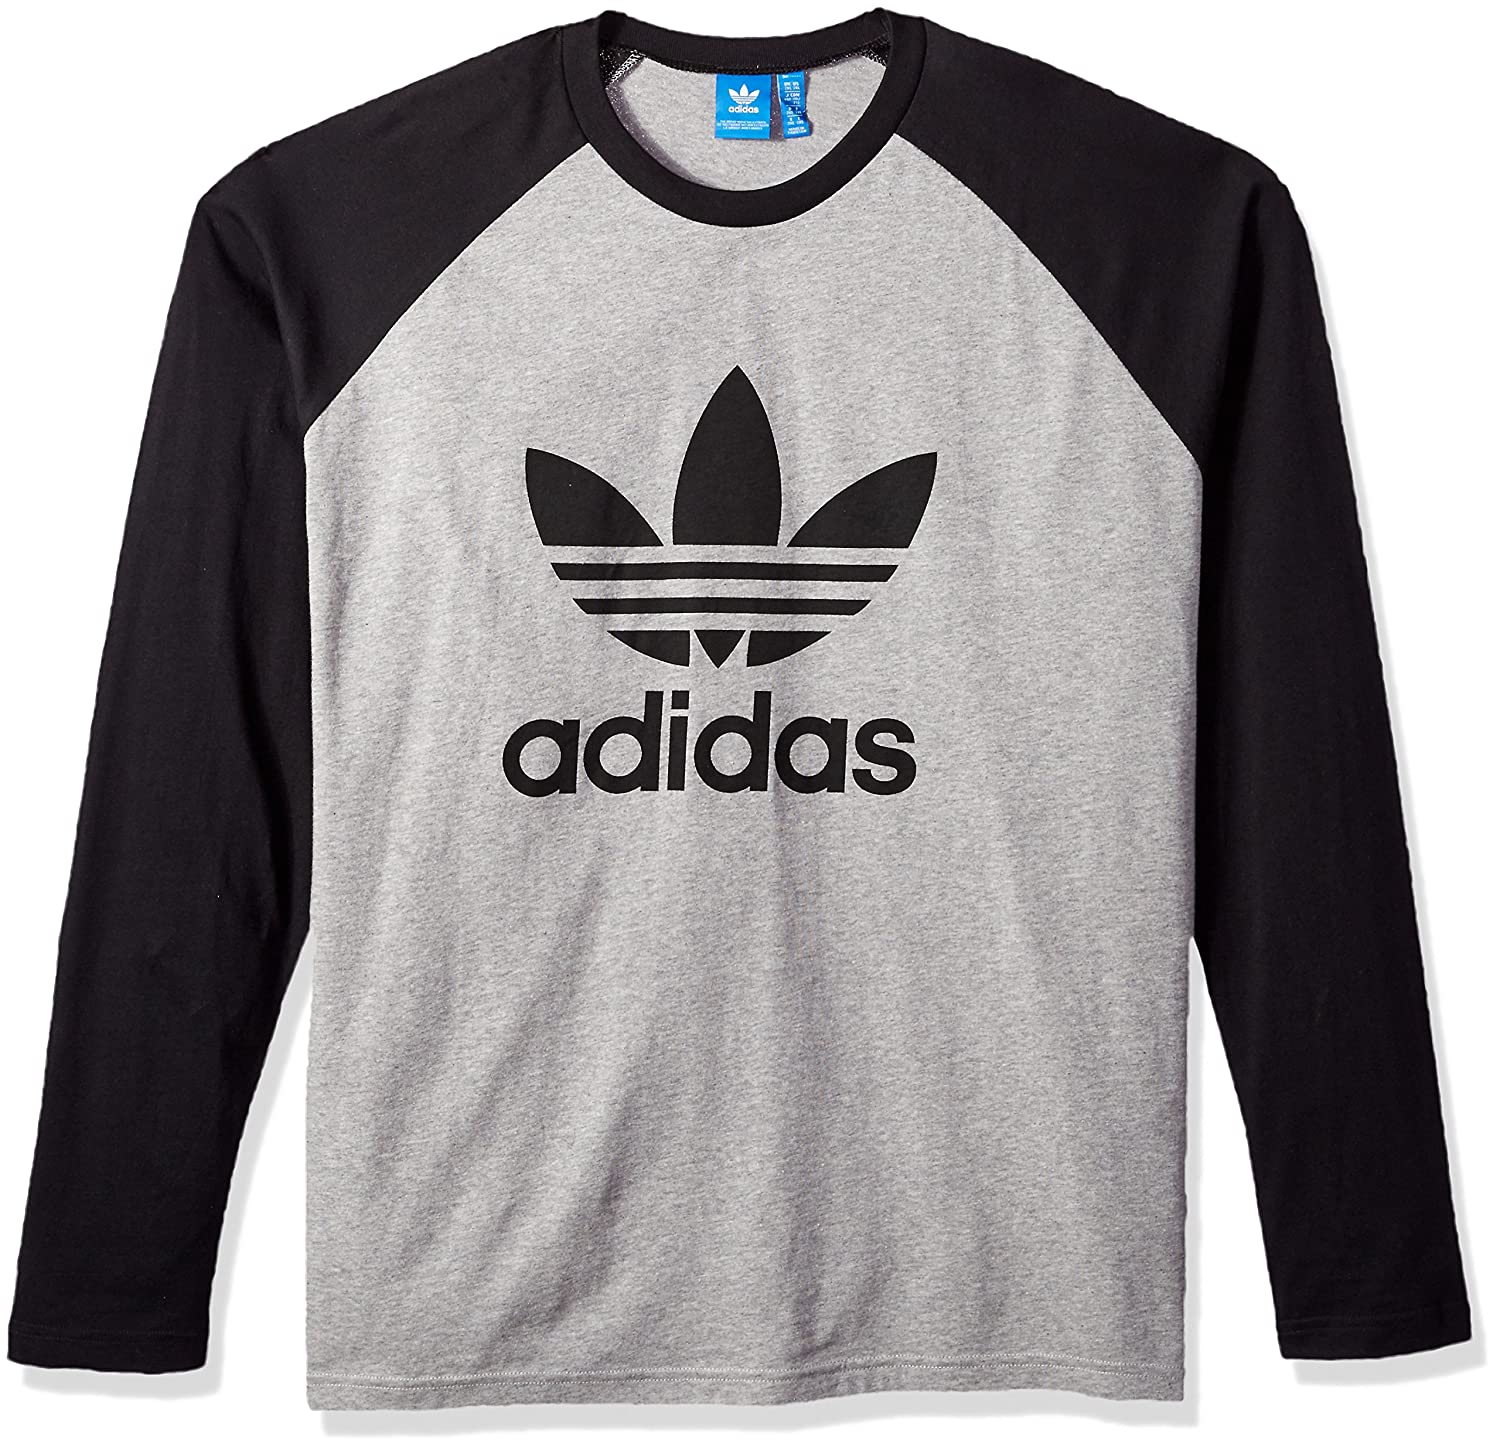 competitive price 64c6d 0c6de adidas Originals Men s Long Sleeve Trefoil Tee at Amazon Men s Clothing  store